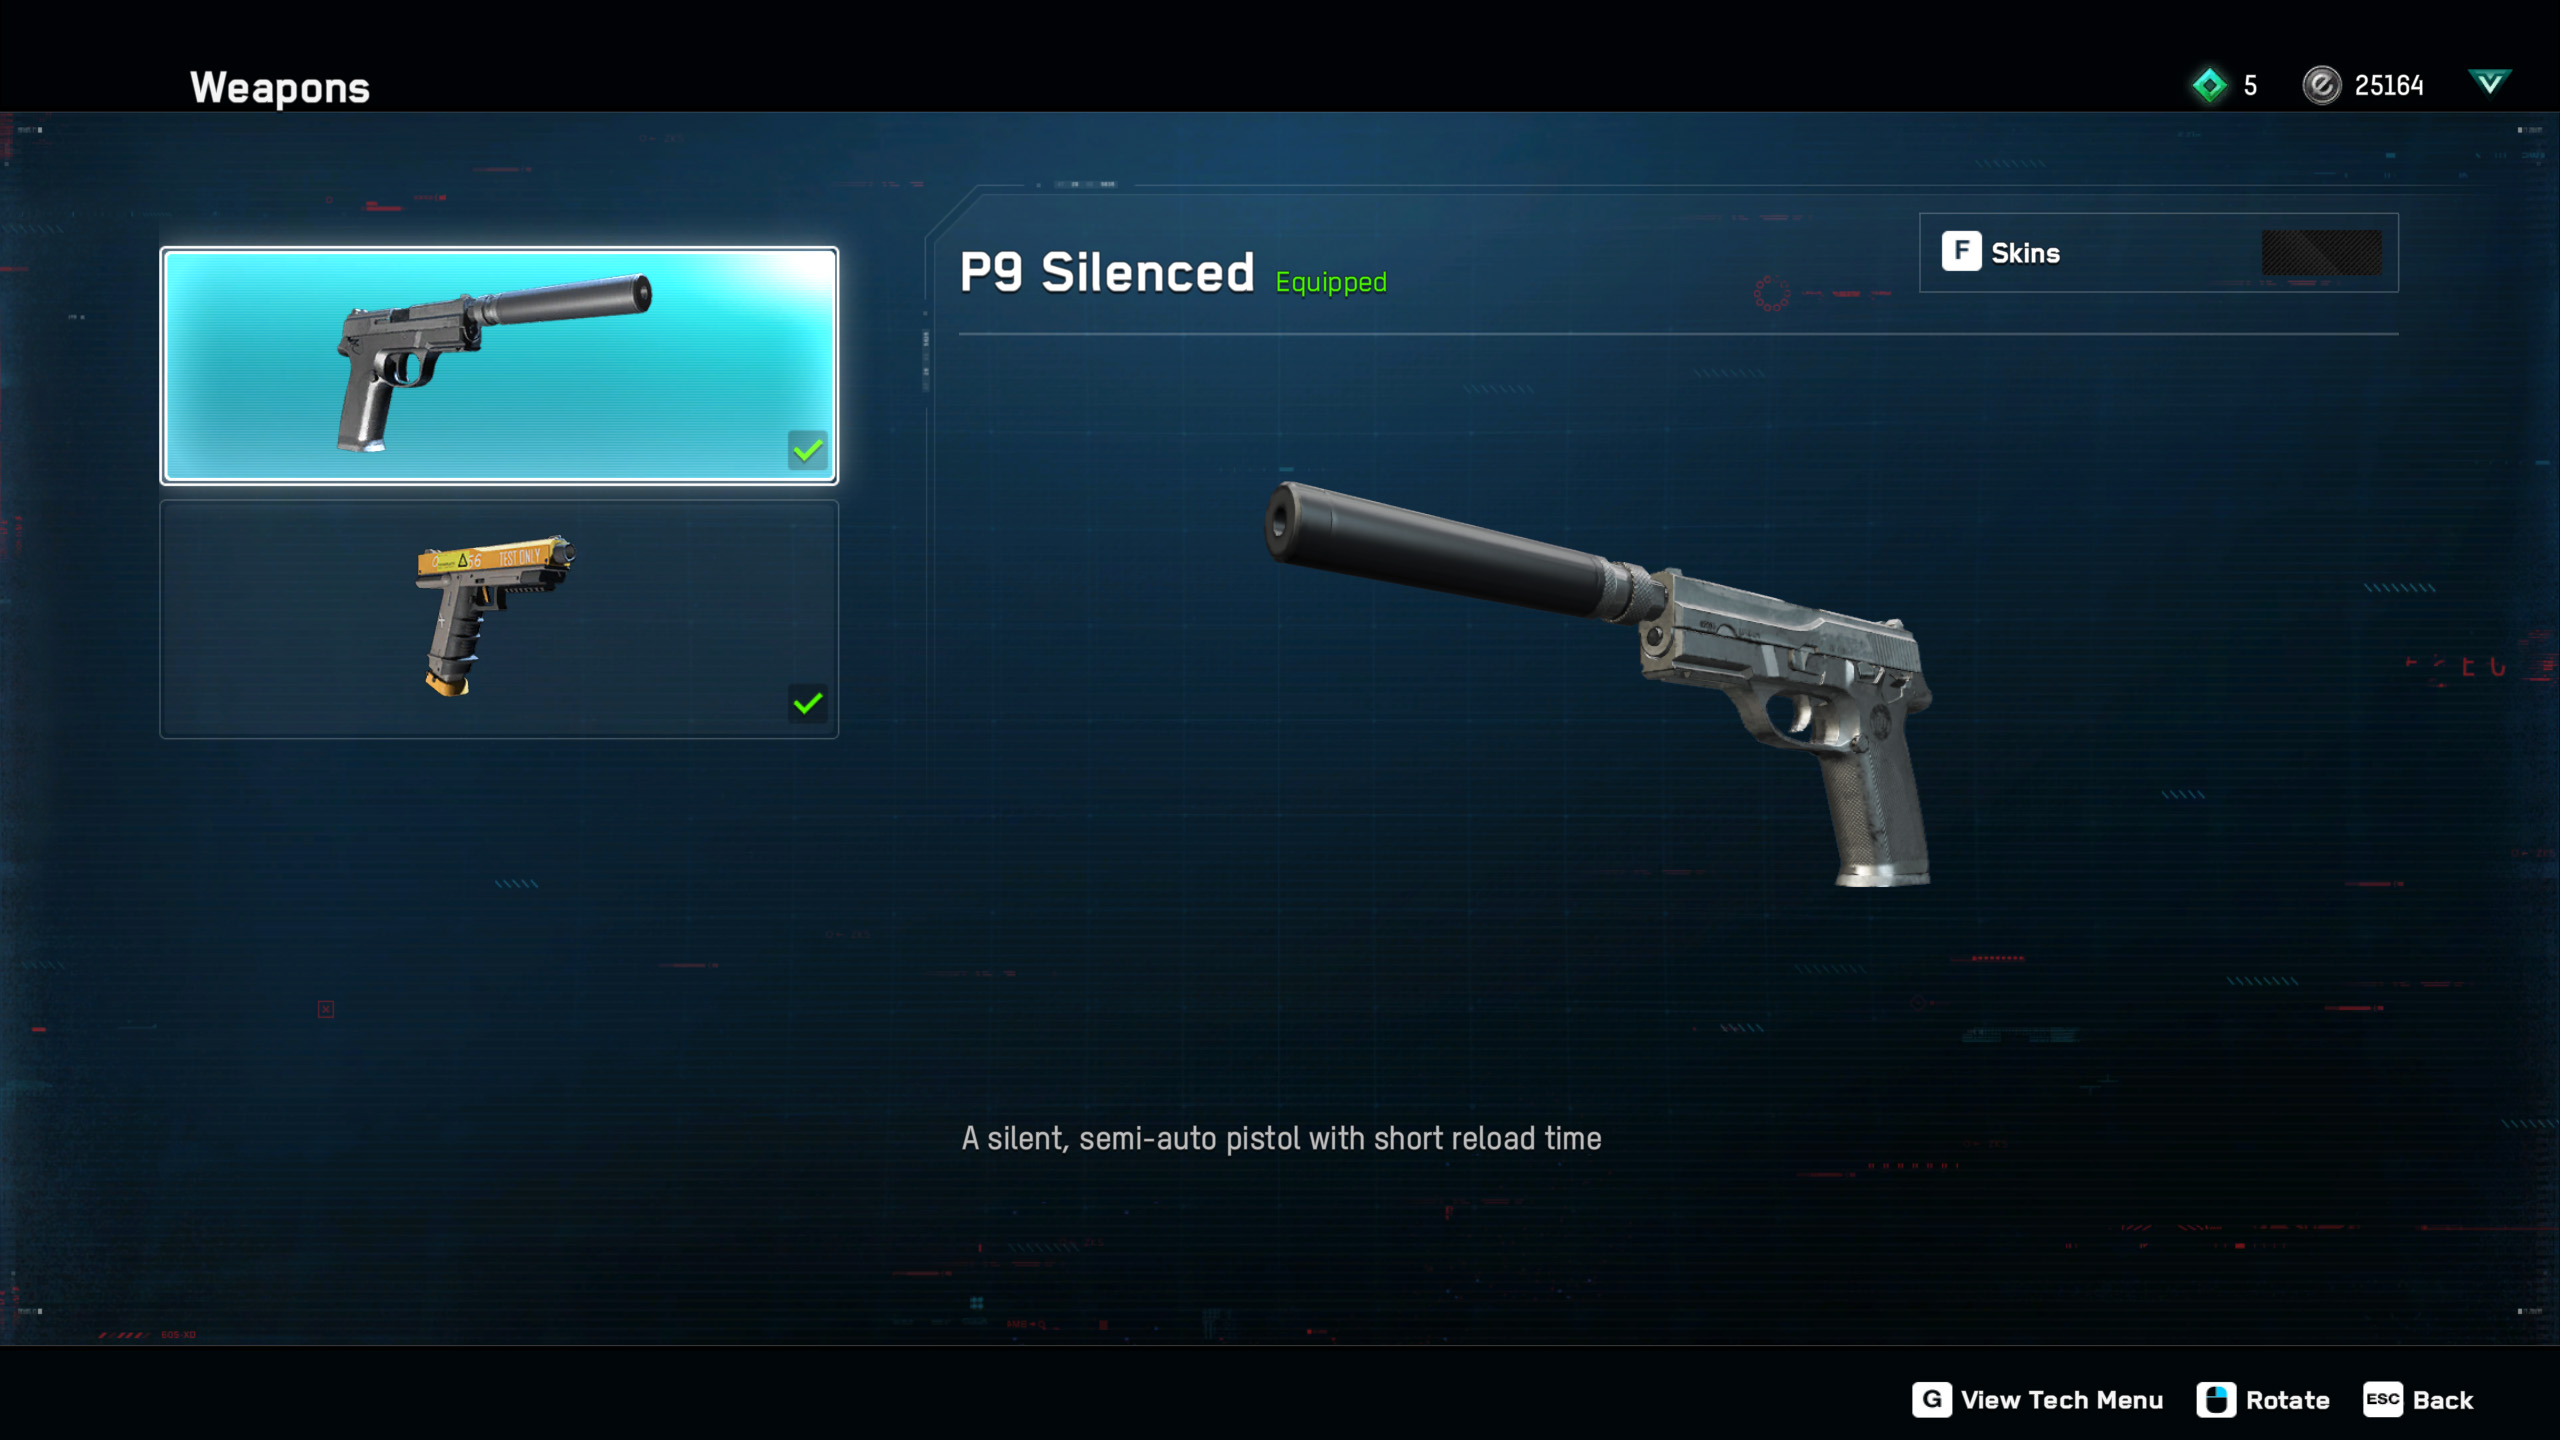 Skilled Operatives can unlock special items like silence guns and more